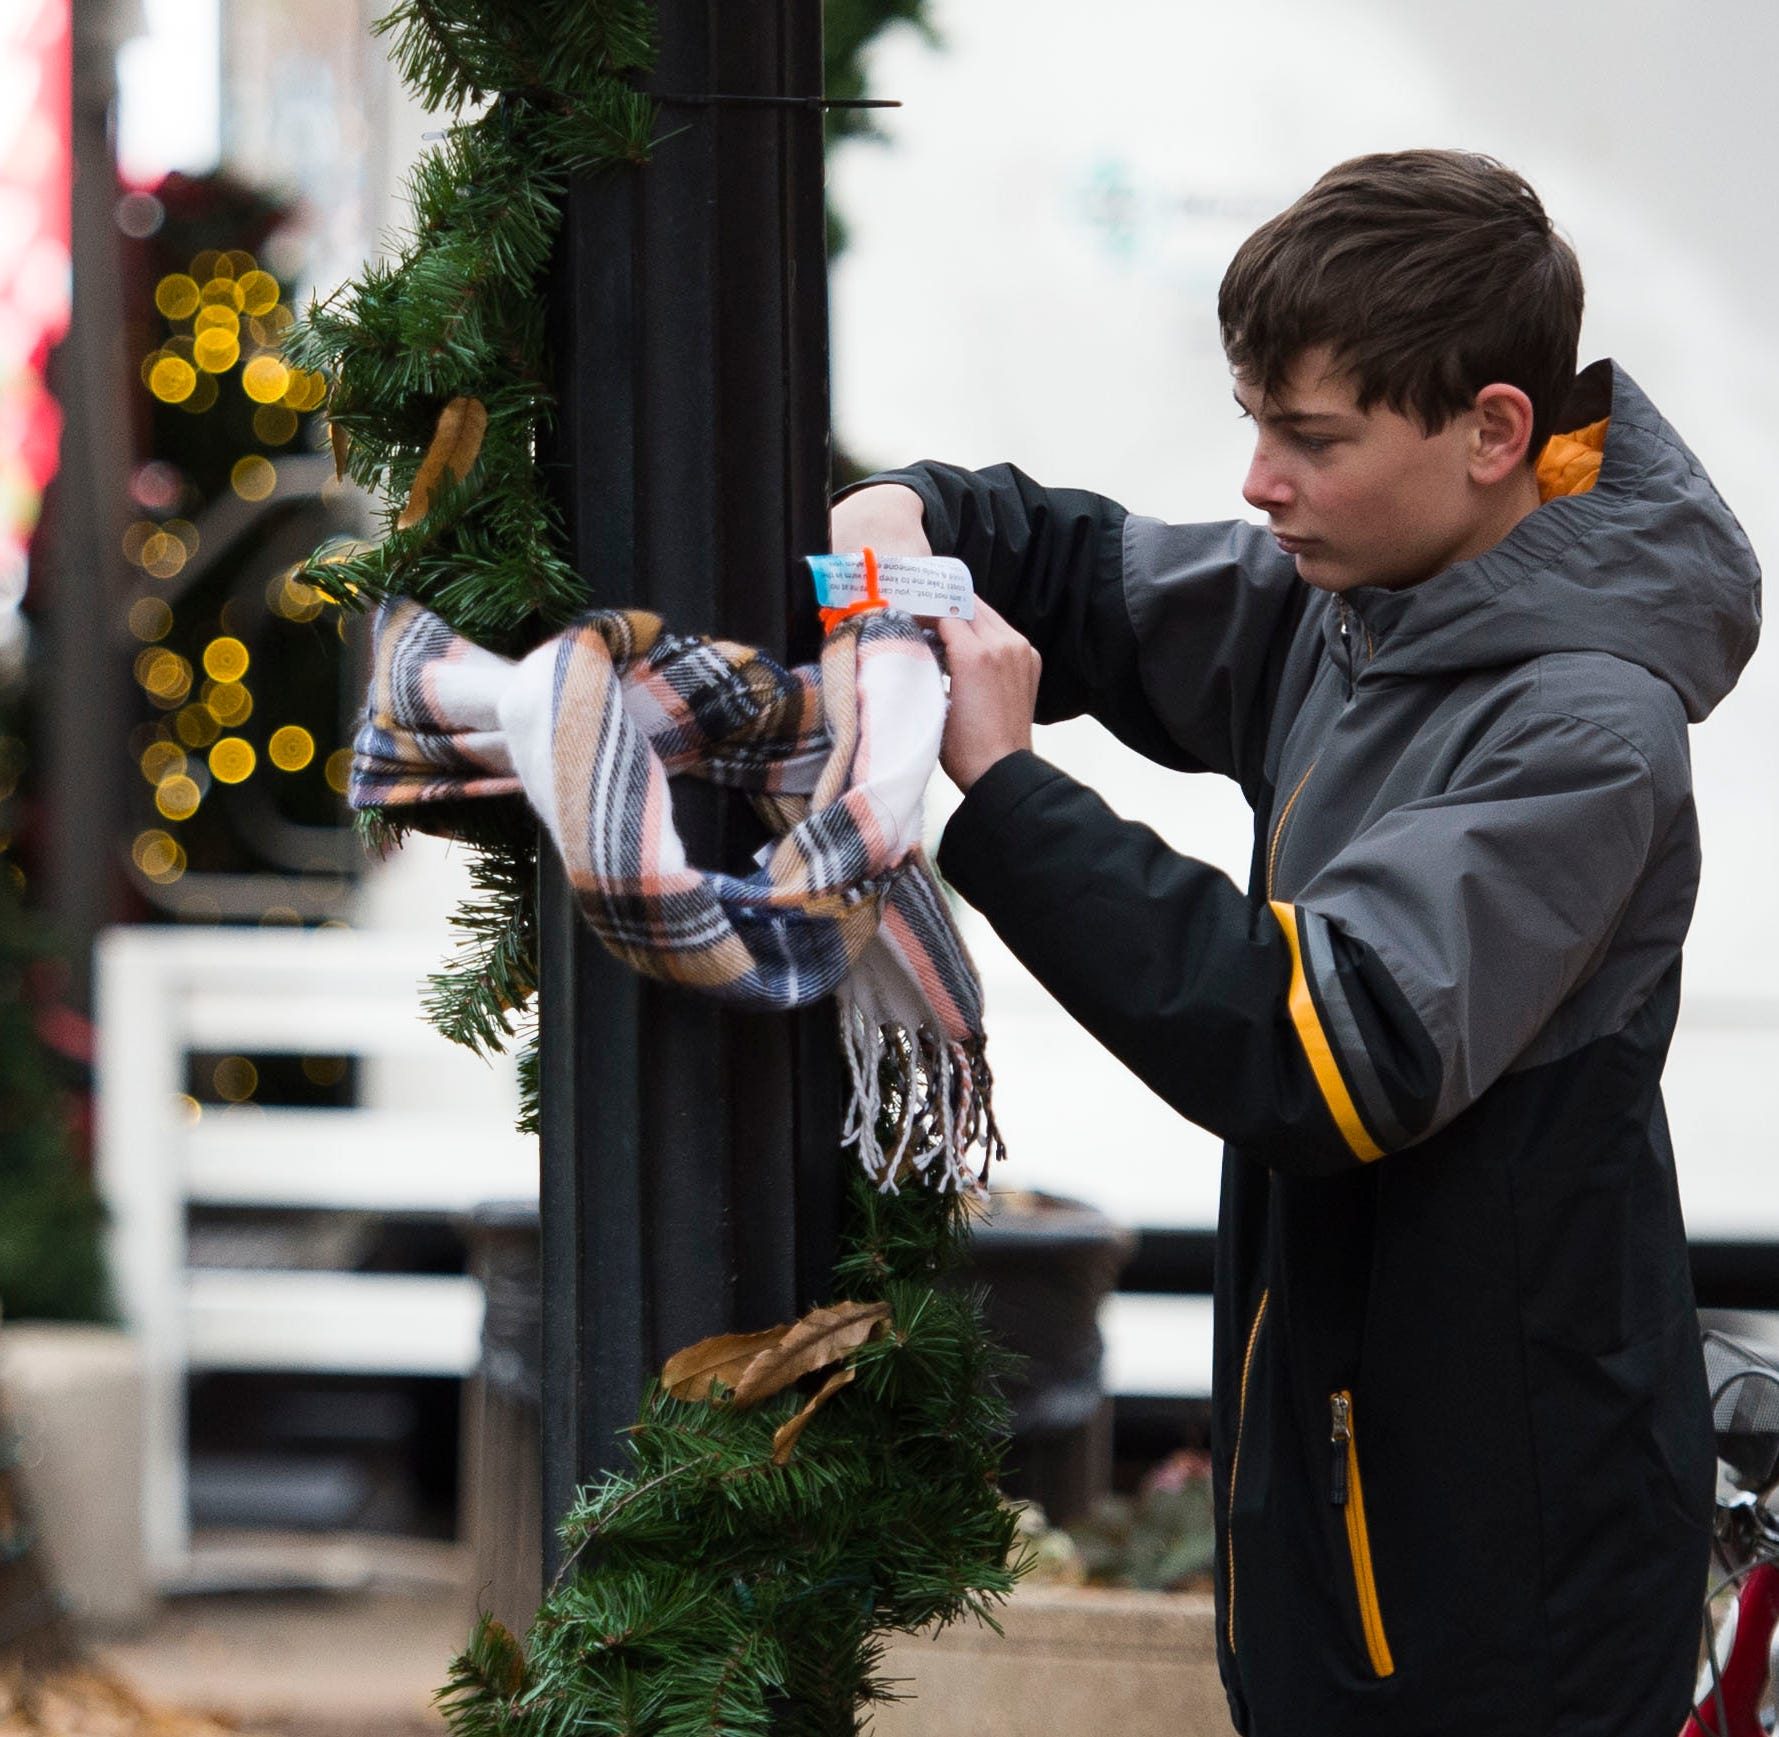 See a scarf hanging in Downtown Knoxville? Go ahead, take it